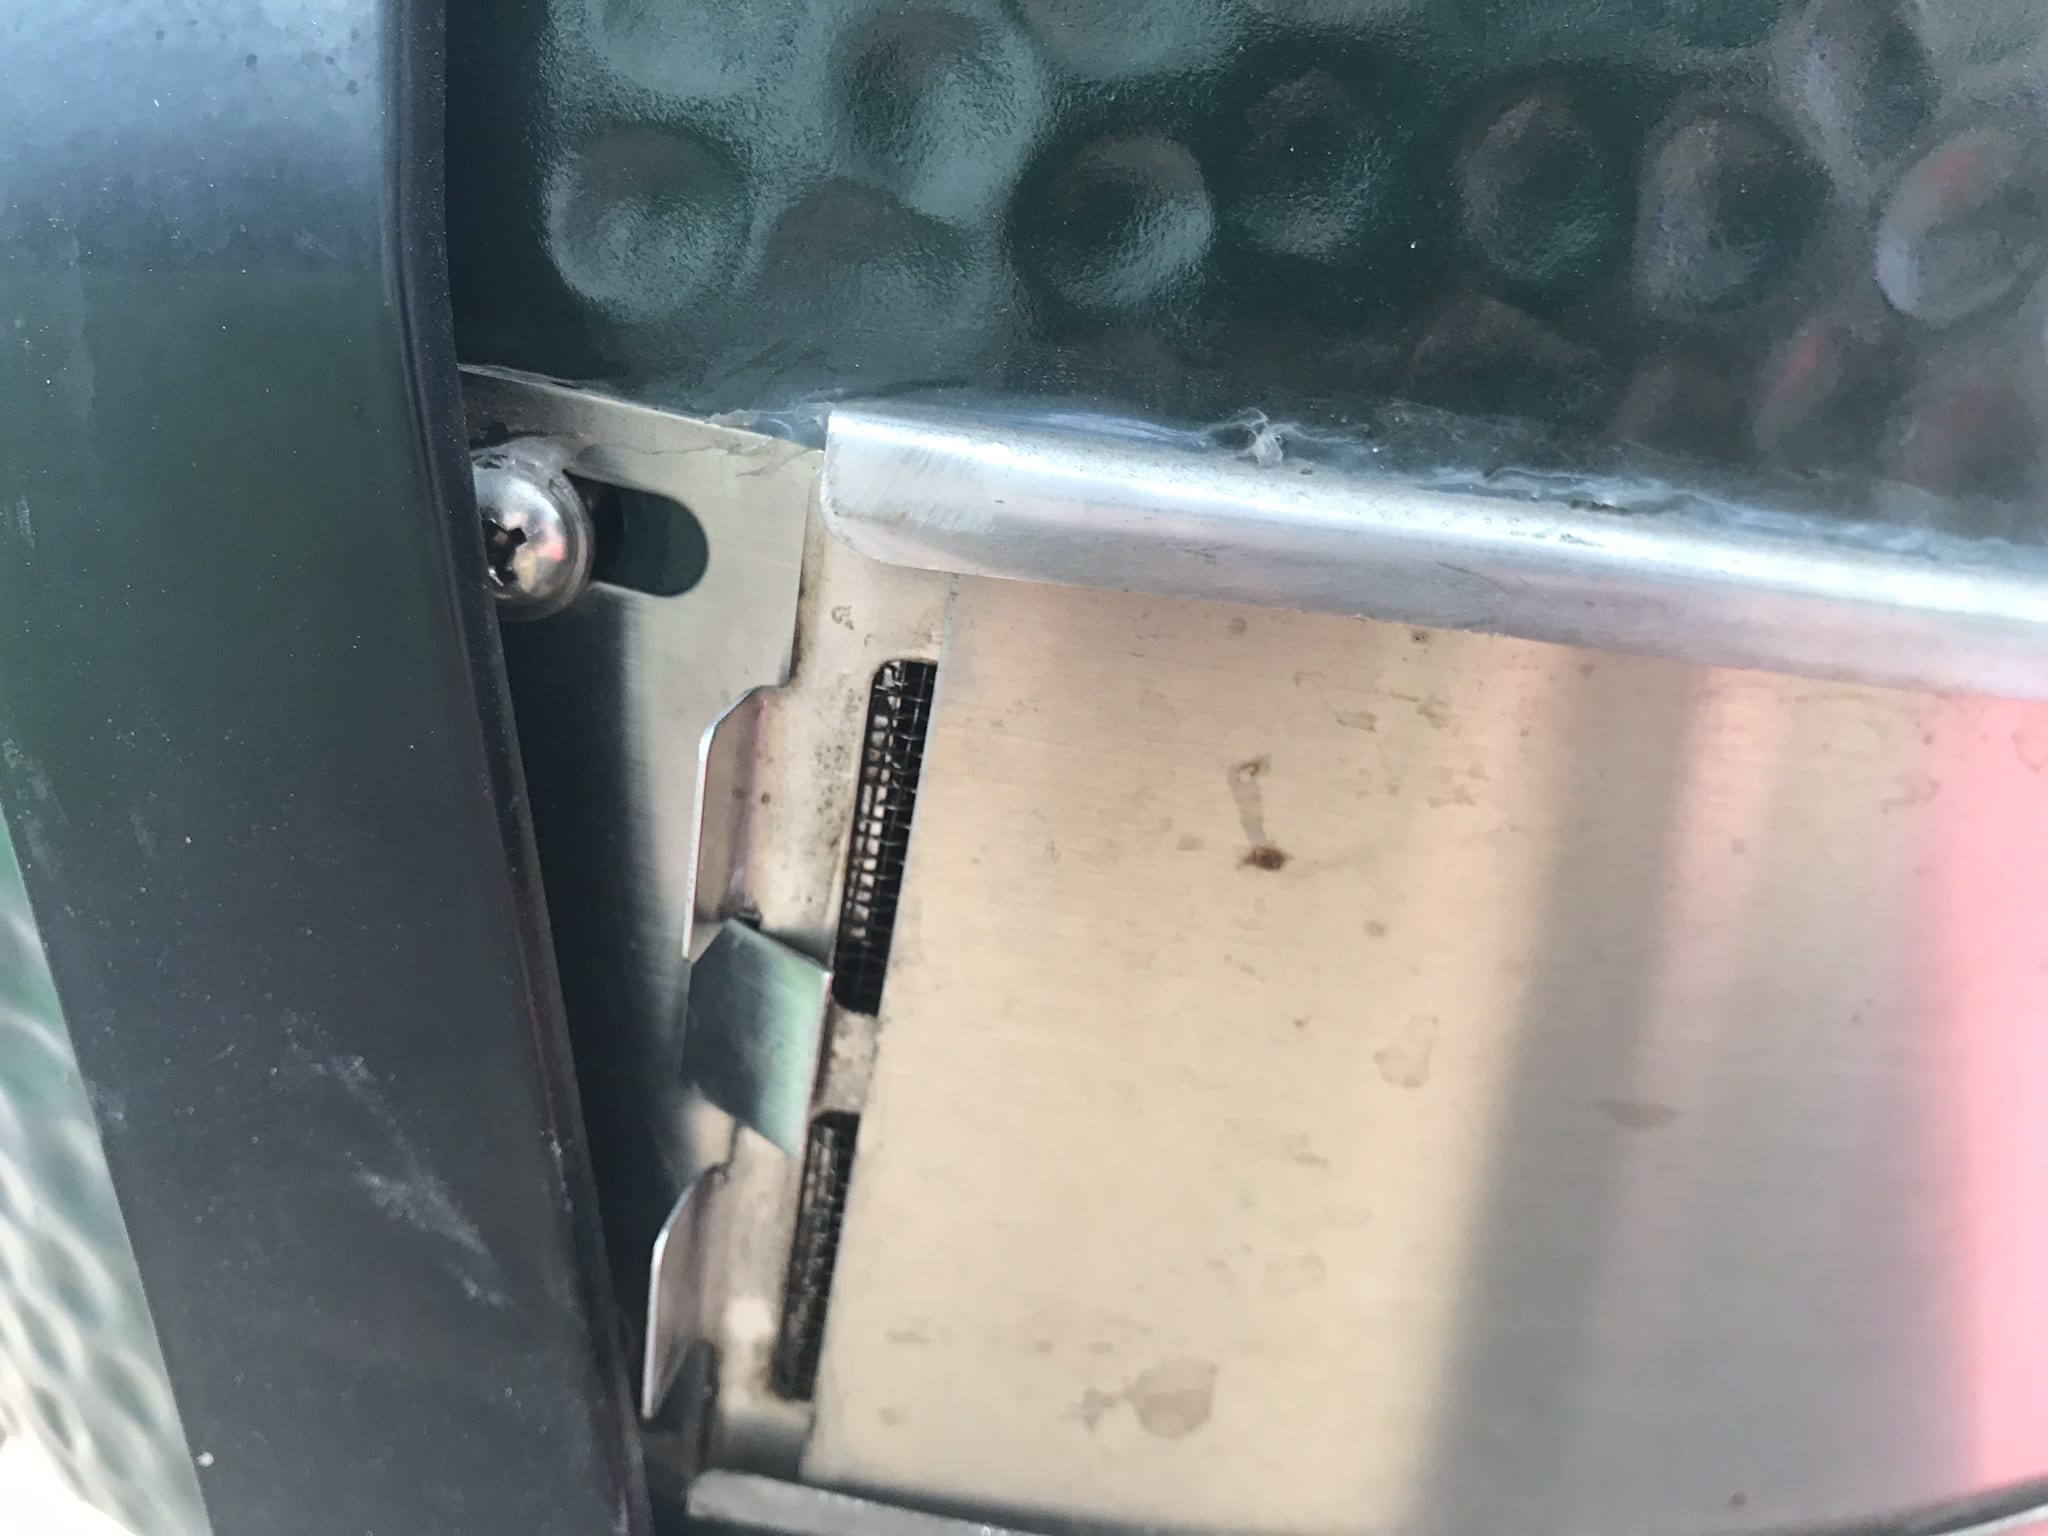 Big Green Egg Lower Vent Setting to Achieve 225 Degrees